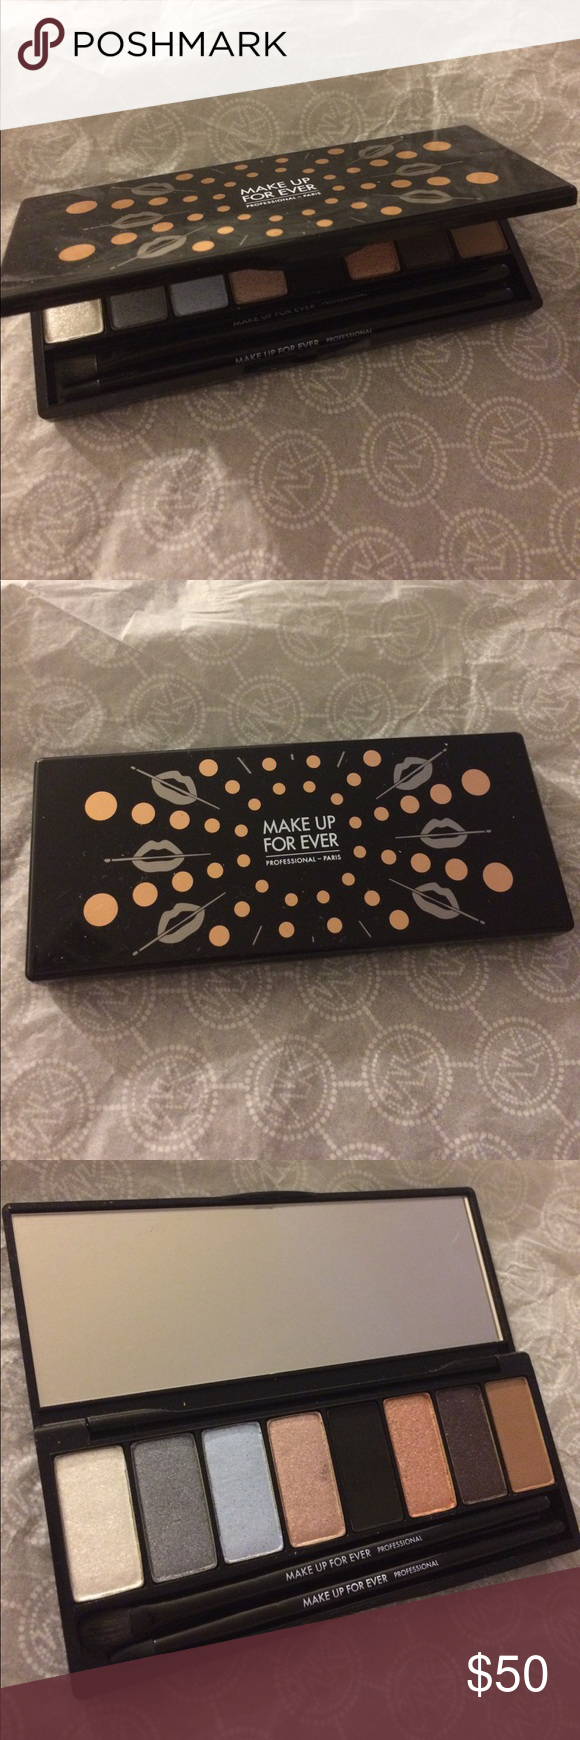 Makeup forever eyeshadow palette Midnight glow Limited